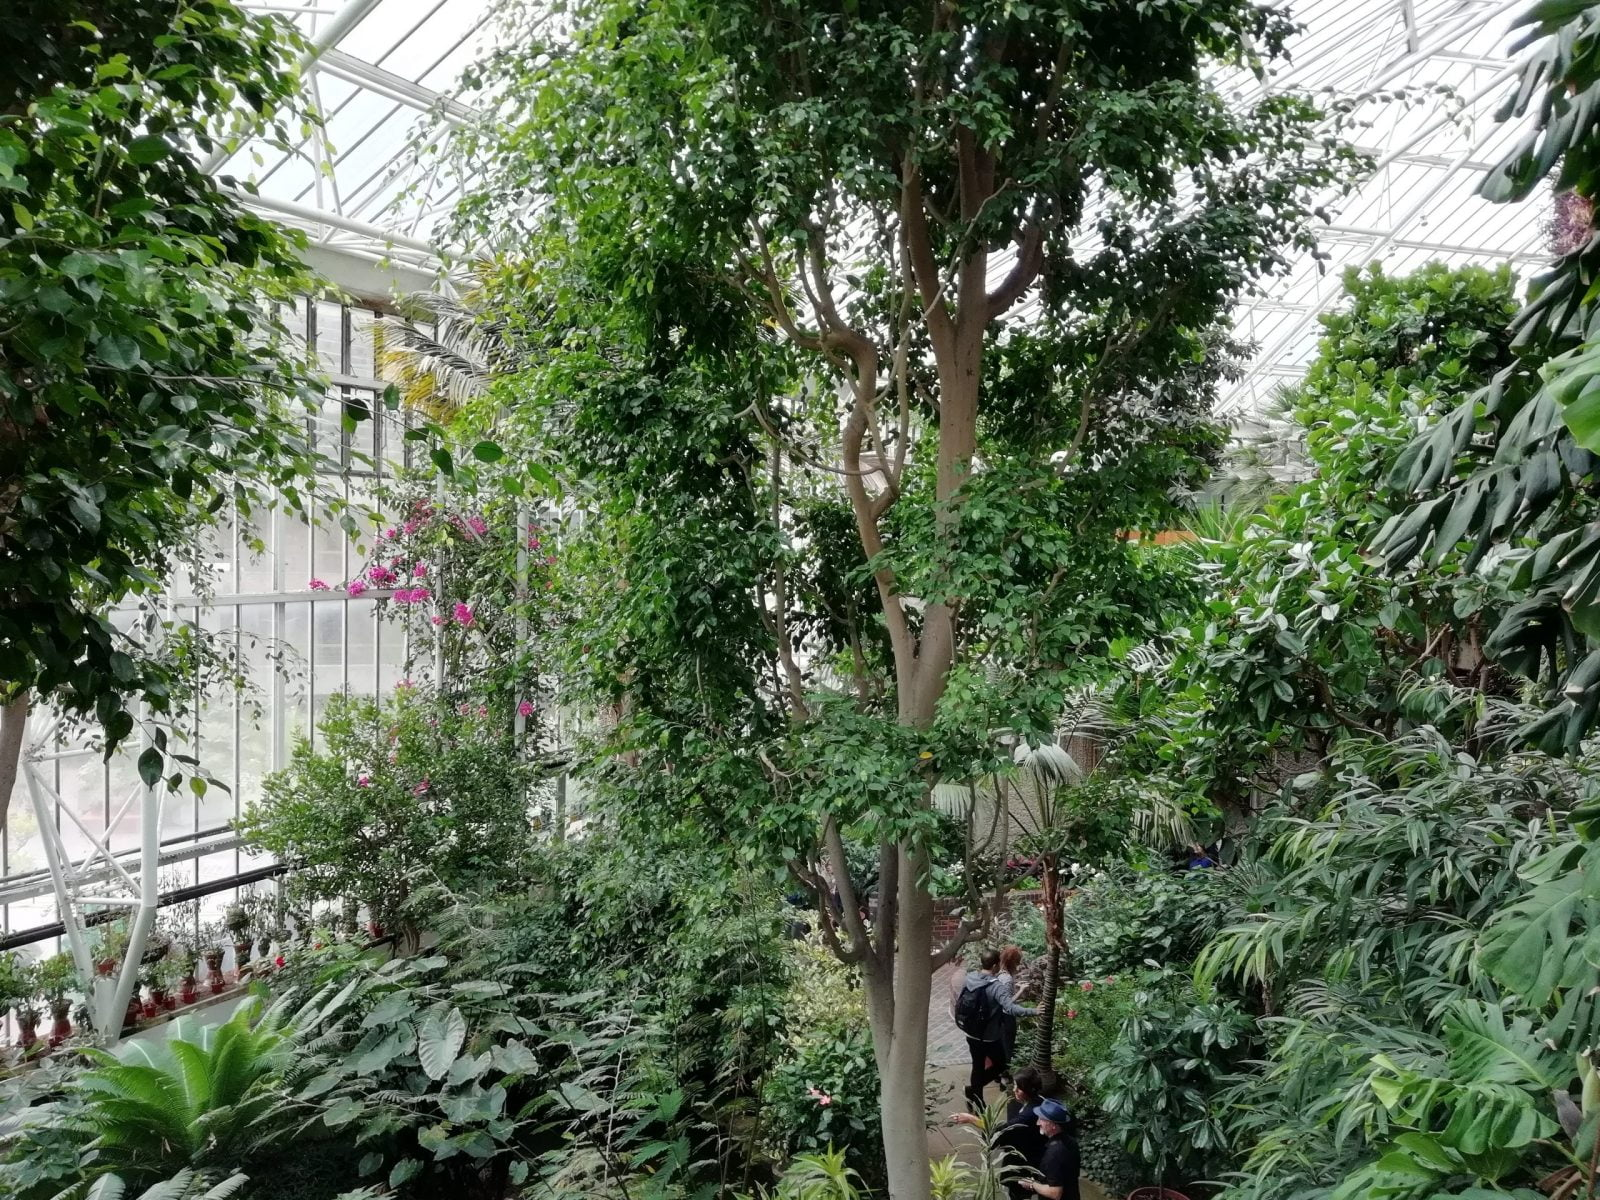 Visiting Barbican Conservatory: Photo Gallery 3